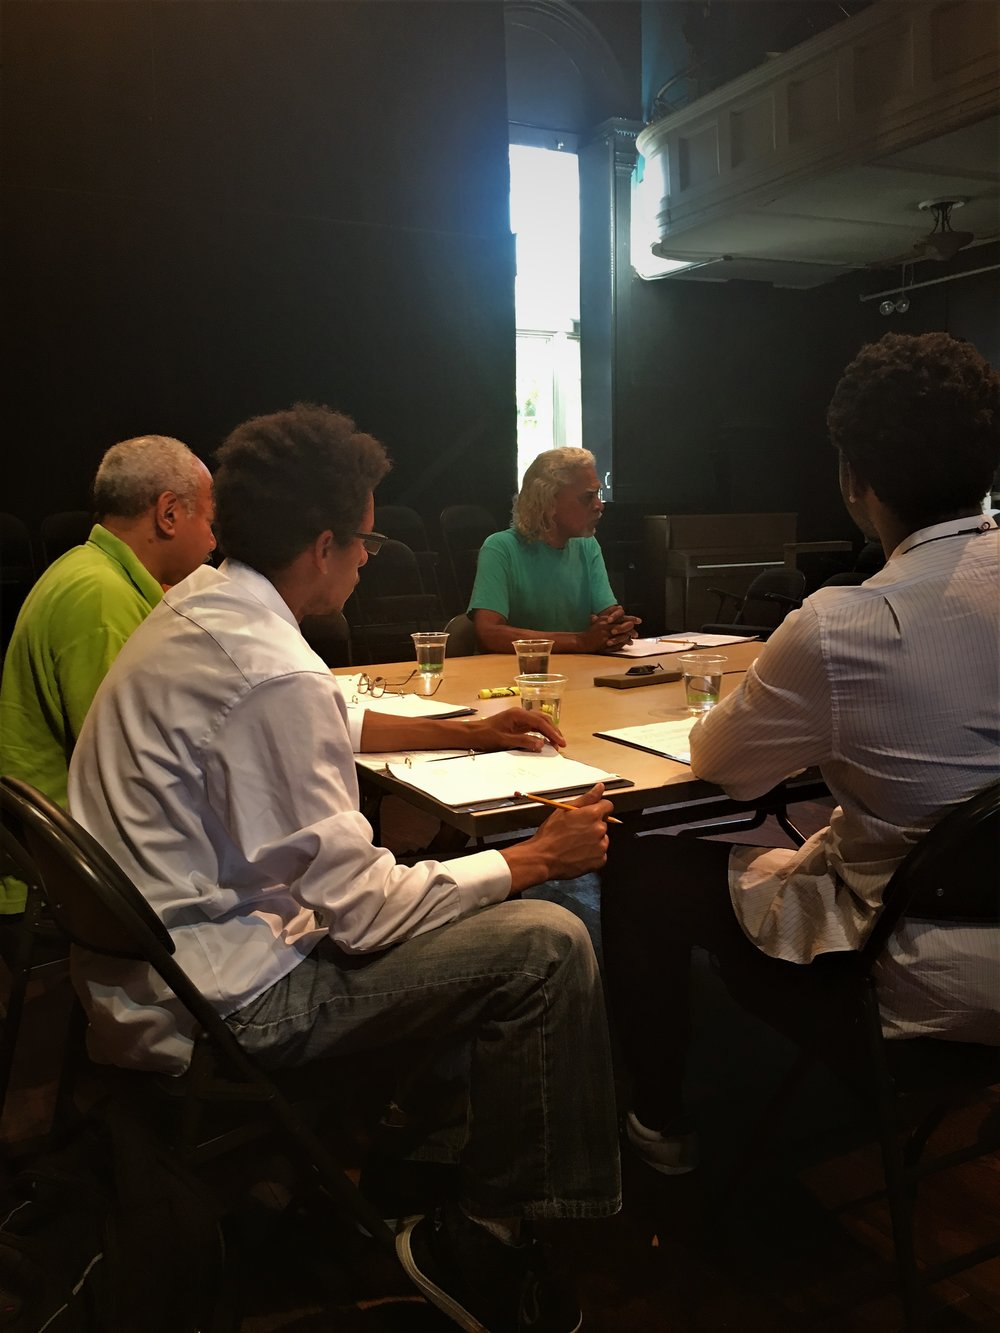 Jaymes Jorsling's Tripping Over Roots has a first table read at Rites and Reason Theatre -